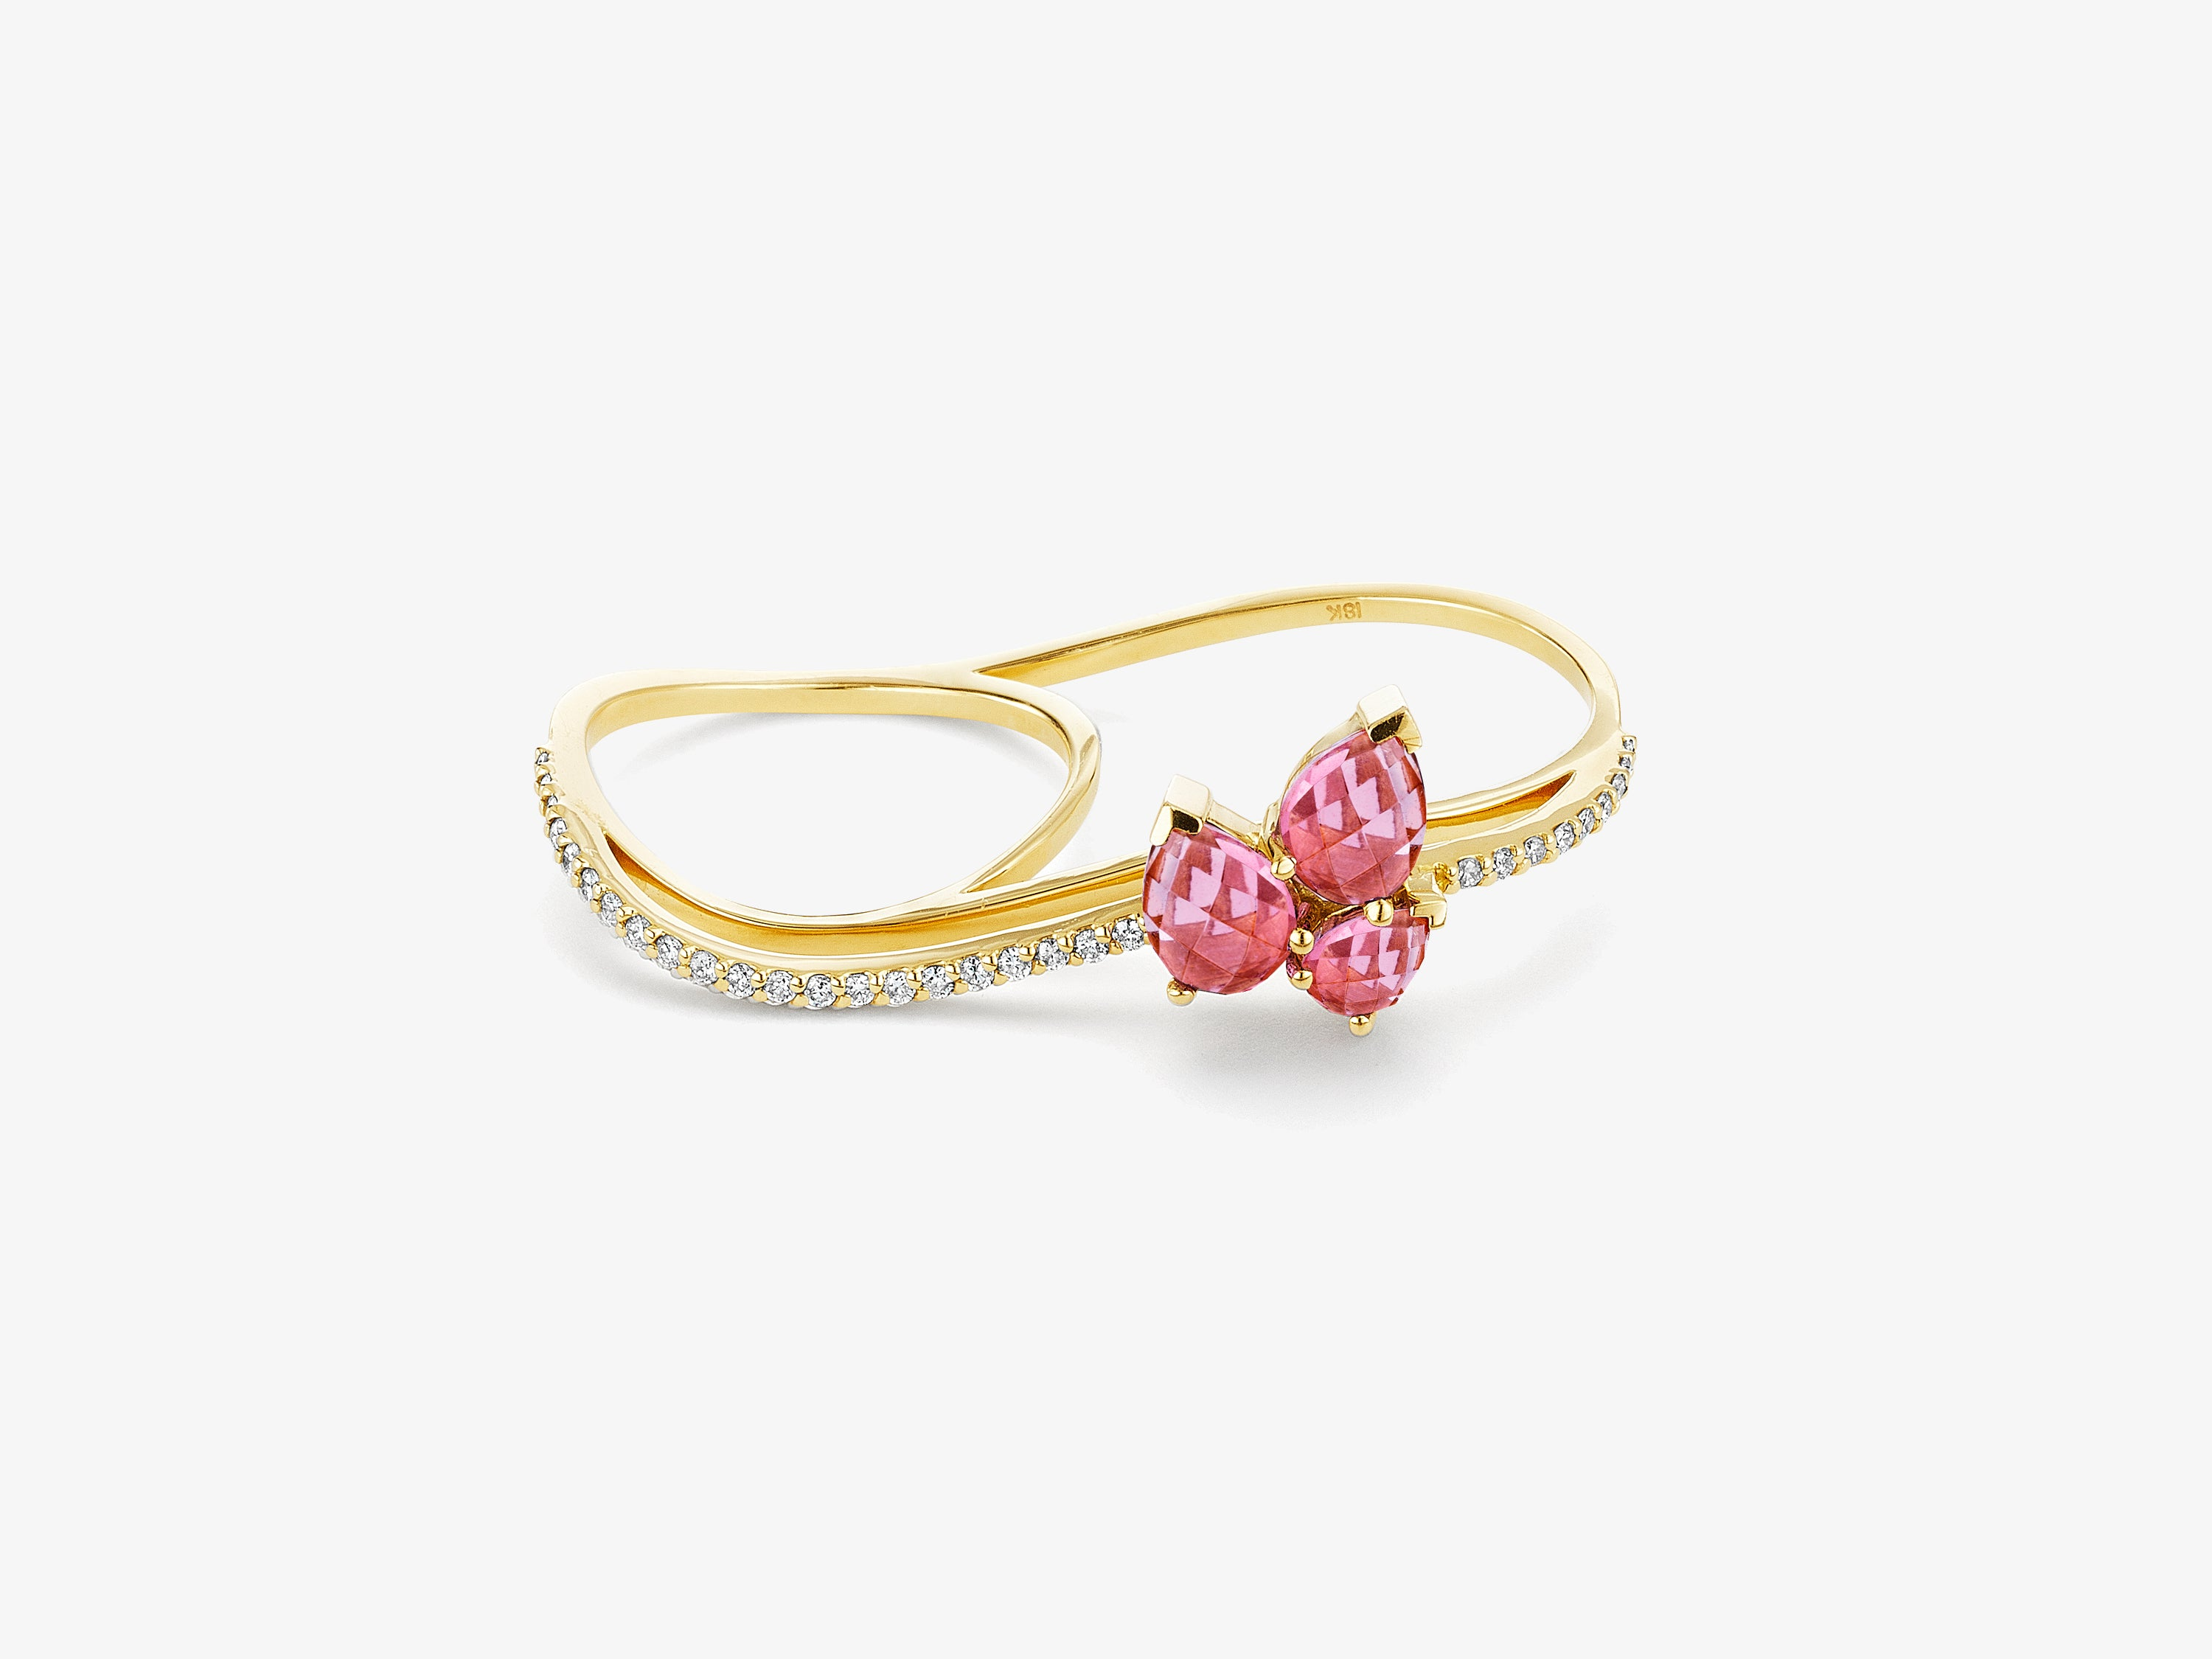 Three Dimensional Wavy Double Finger Ring with Diamond Pave & Pear Shaped Gemstone Cluster Detail